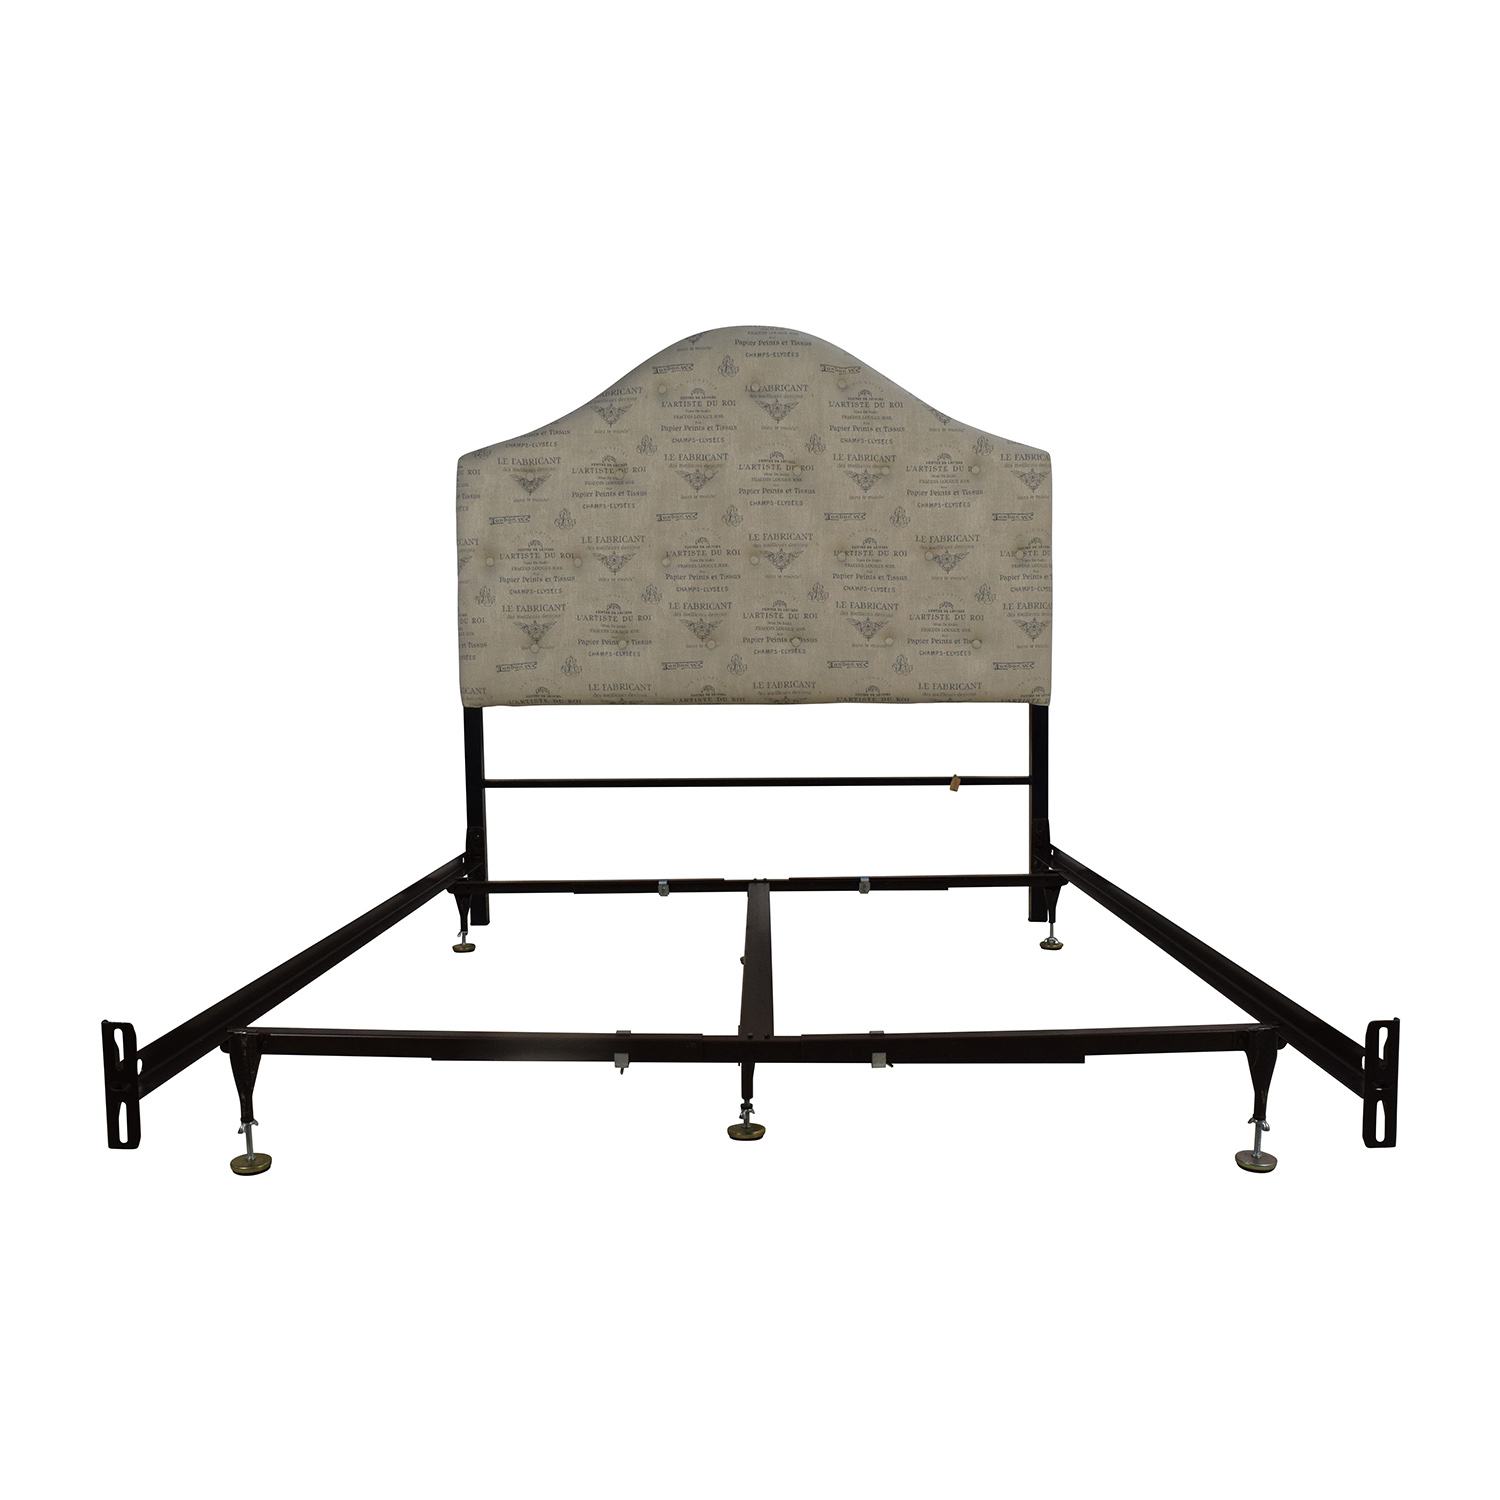 Astounding 56 Off Pier 1 Pier 1 Queen French Script Beige Upholstered Headboard And Frame Beds Ibusinesslaw Wood Chair Design Ideas Ibusinesslaworg